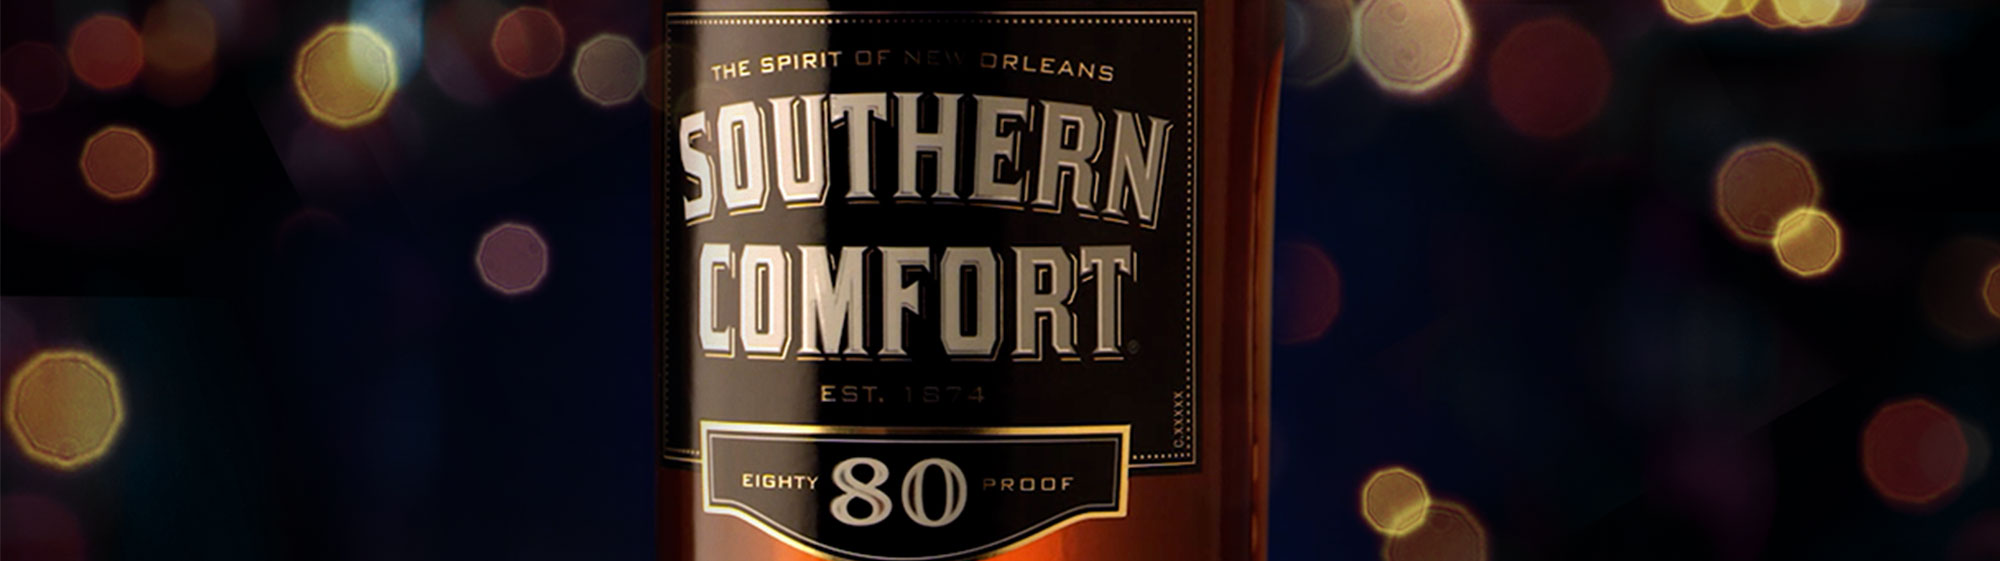 Southern comfort 80 proof secondary